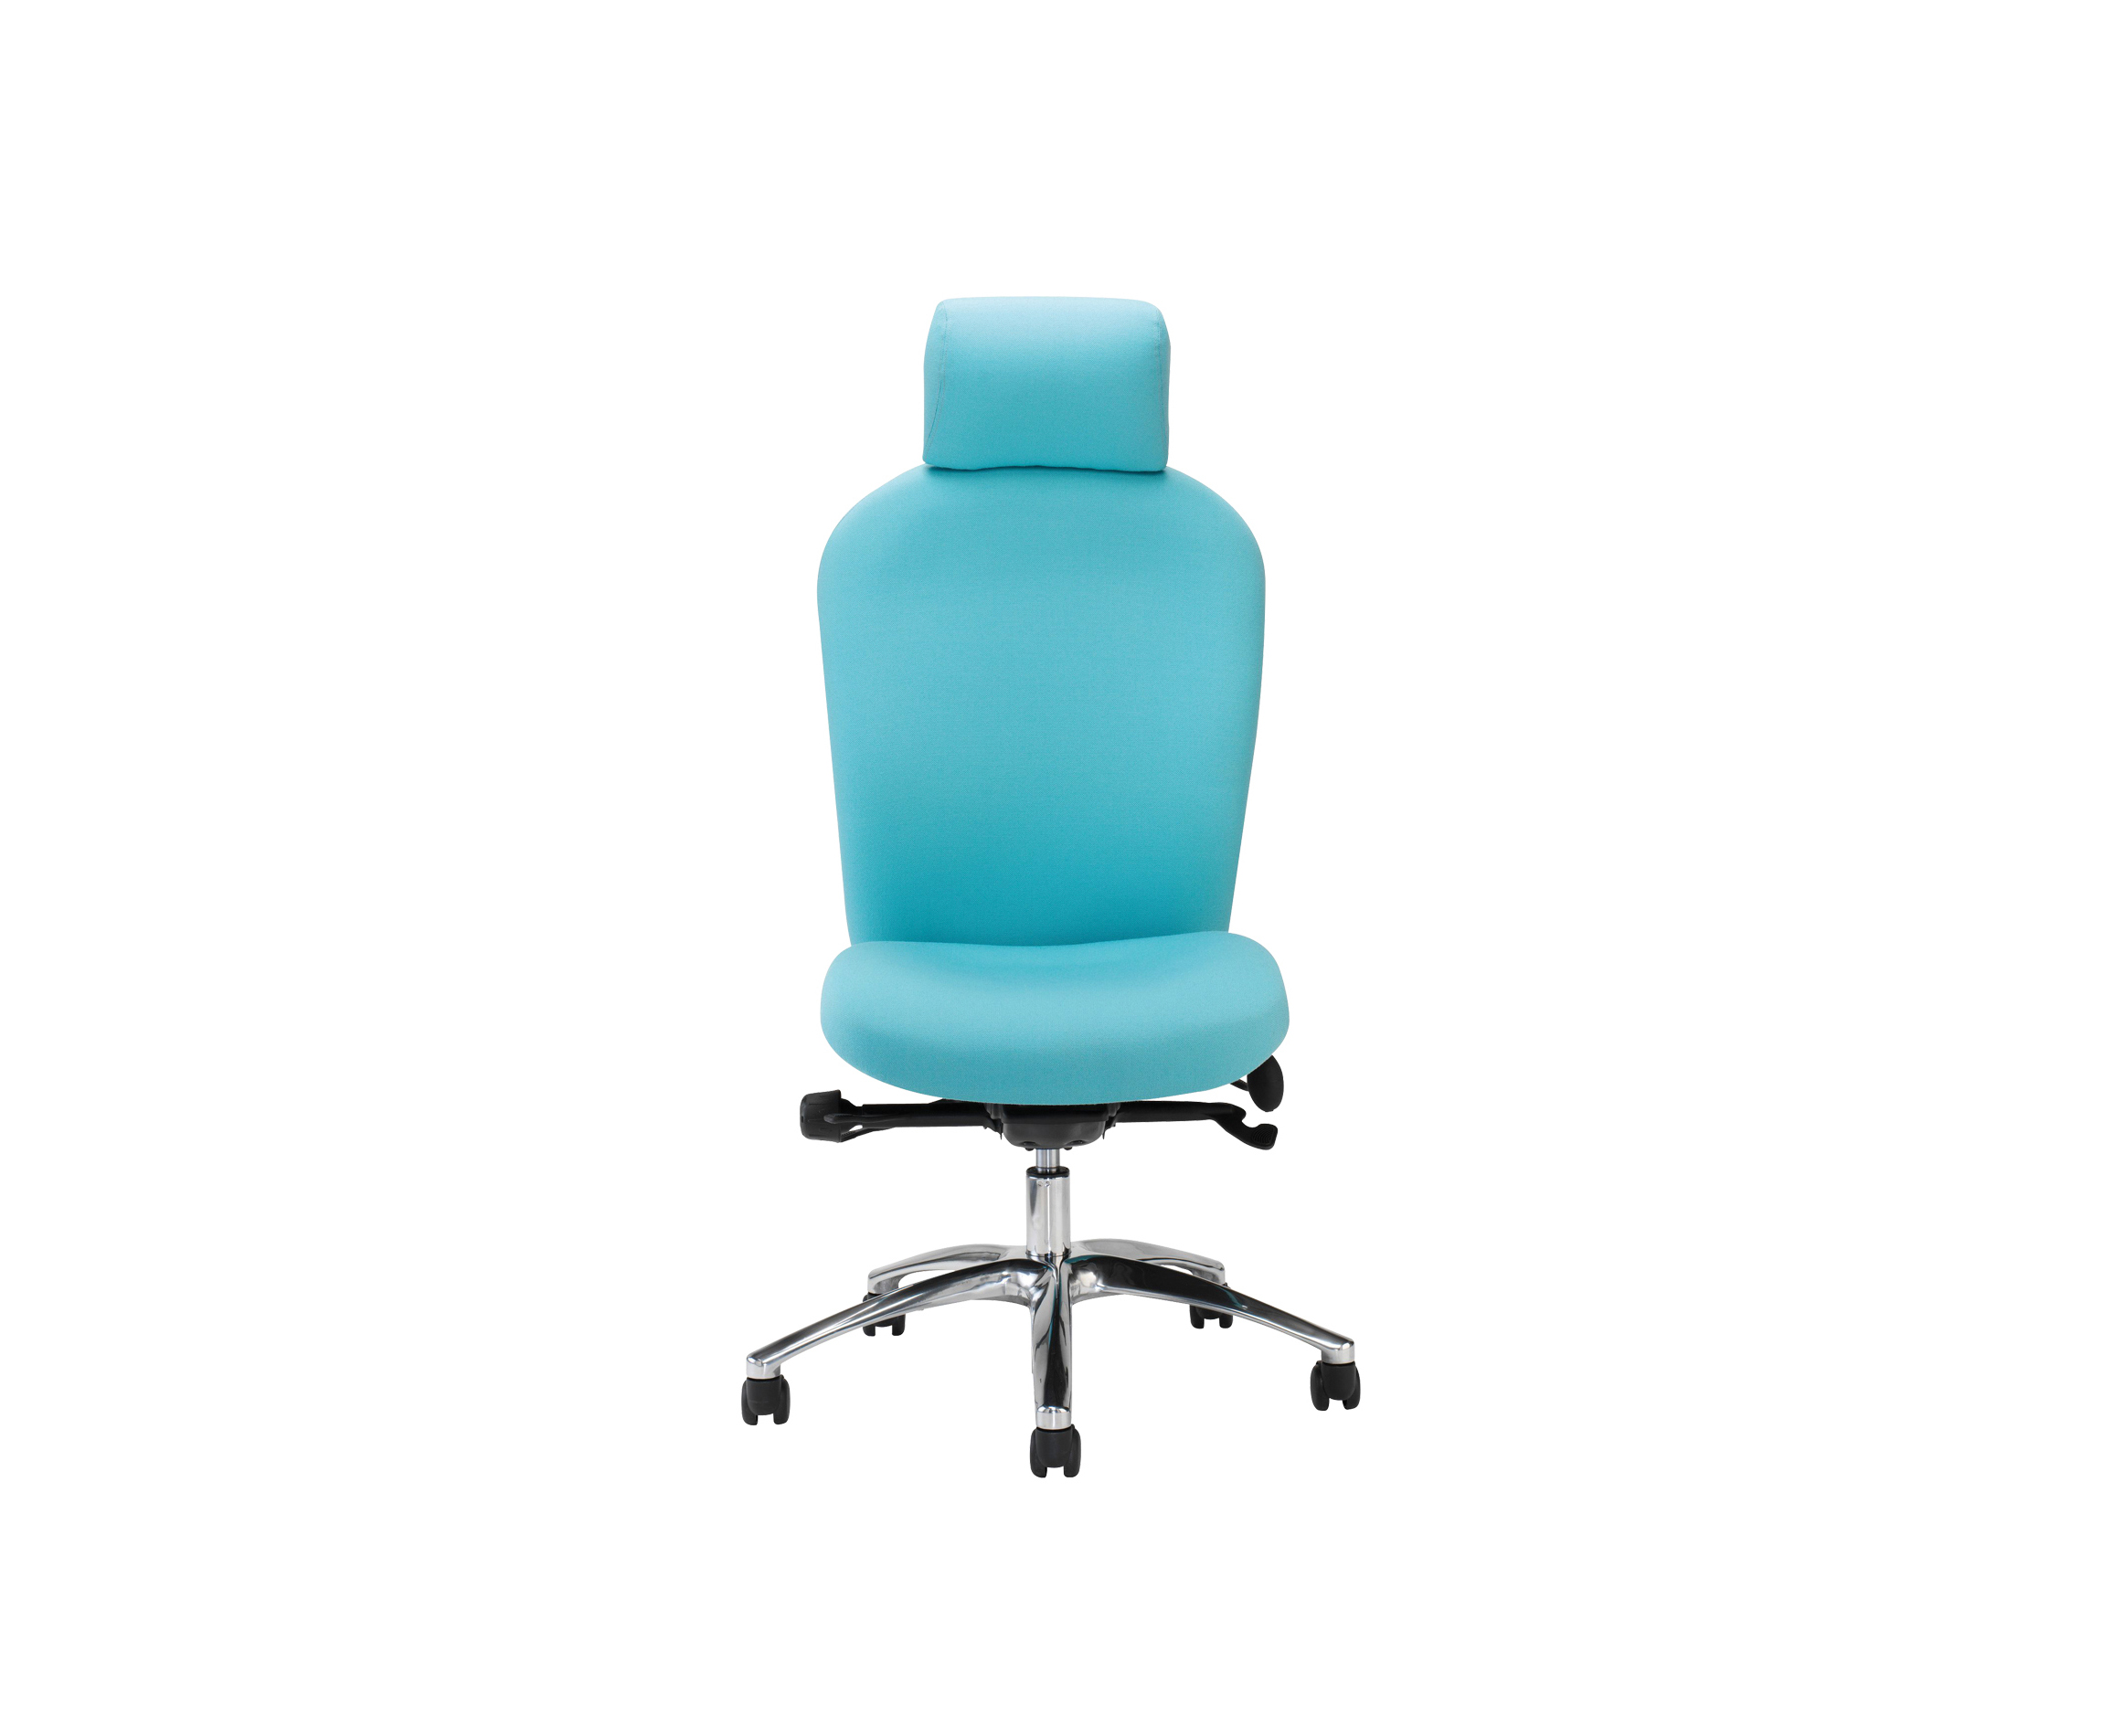 posture support chairs office ergonomic chair lebanon stylish operational with